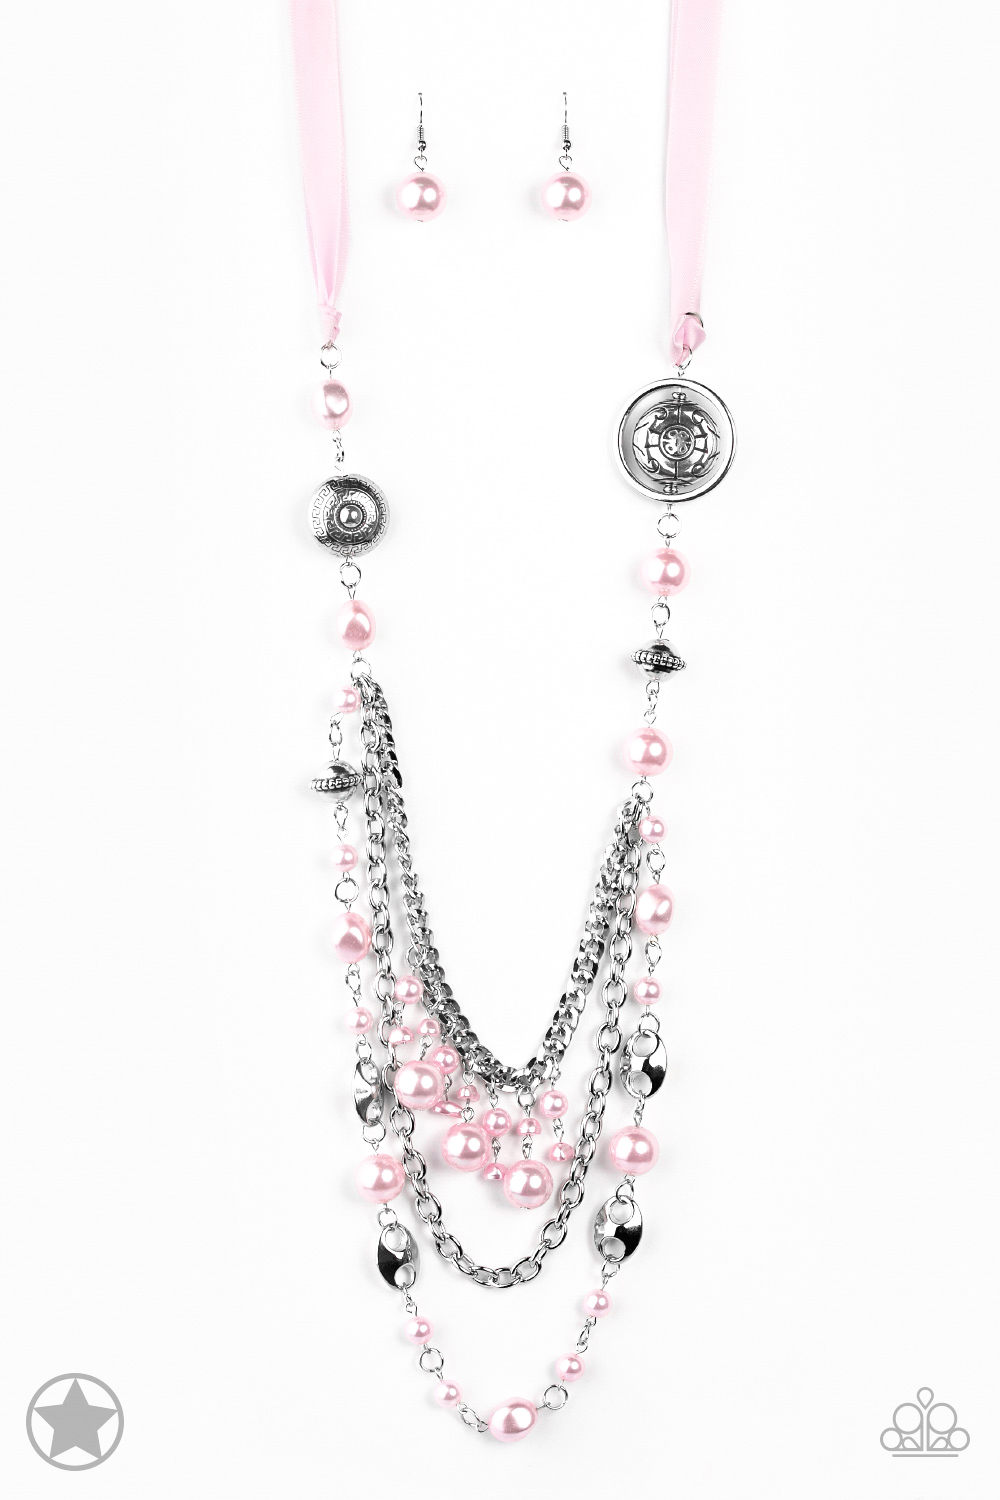 E3 83 87 E3 83 95 E3 82 A1 E3 83 AC E3 83 B3 E3 82 B7 E3 83 A3 E3 83 AB additionally Wiringdiagramsymbols furthermore Pink Ribbon And Pearls Blockbuster Necklace additionally 32825754730 additionally Bielles Pistons Chemises Vilebrequin 208708. on vw